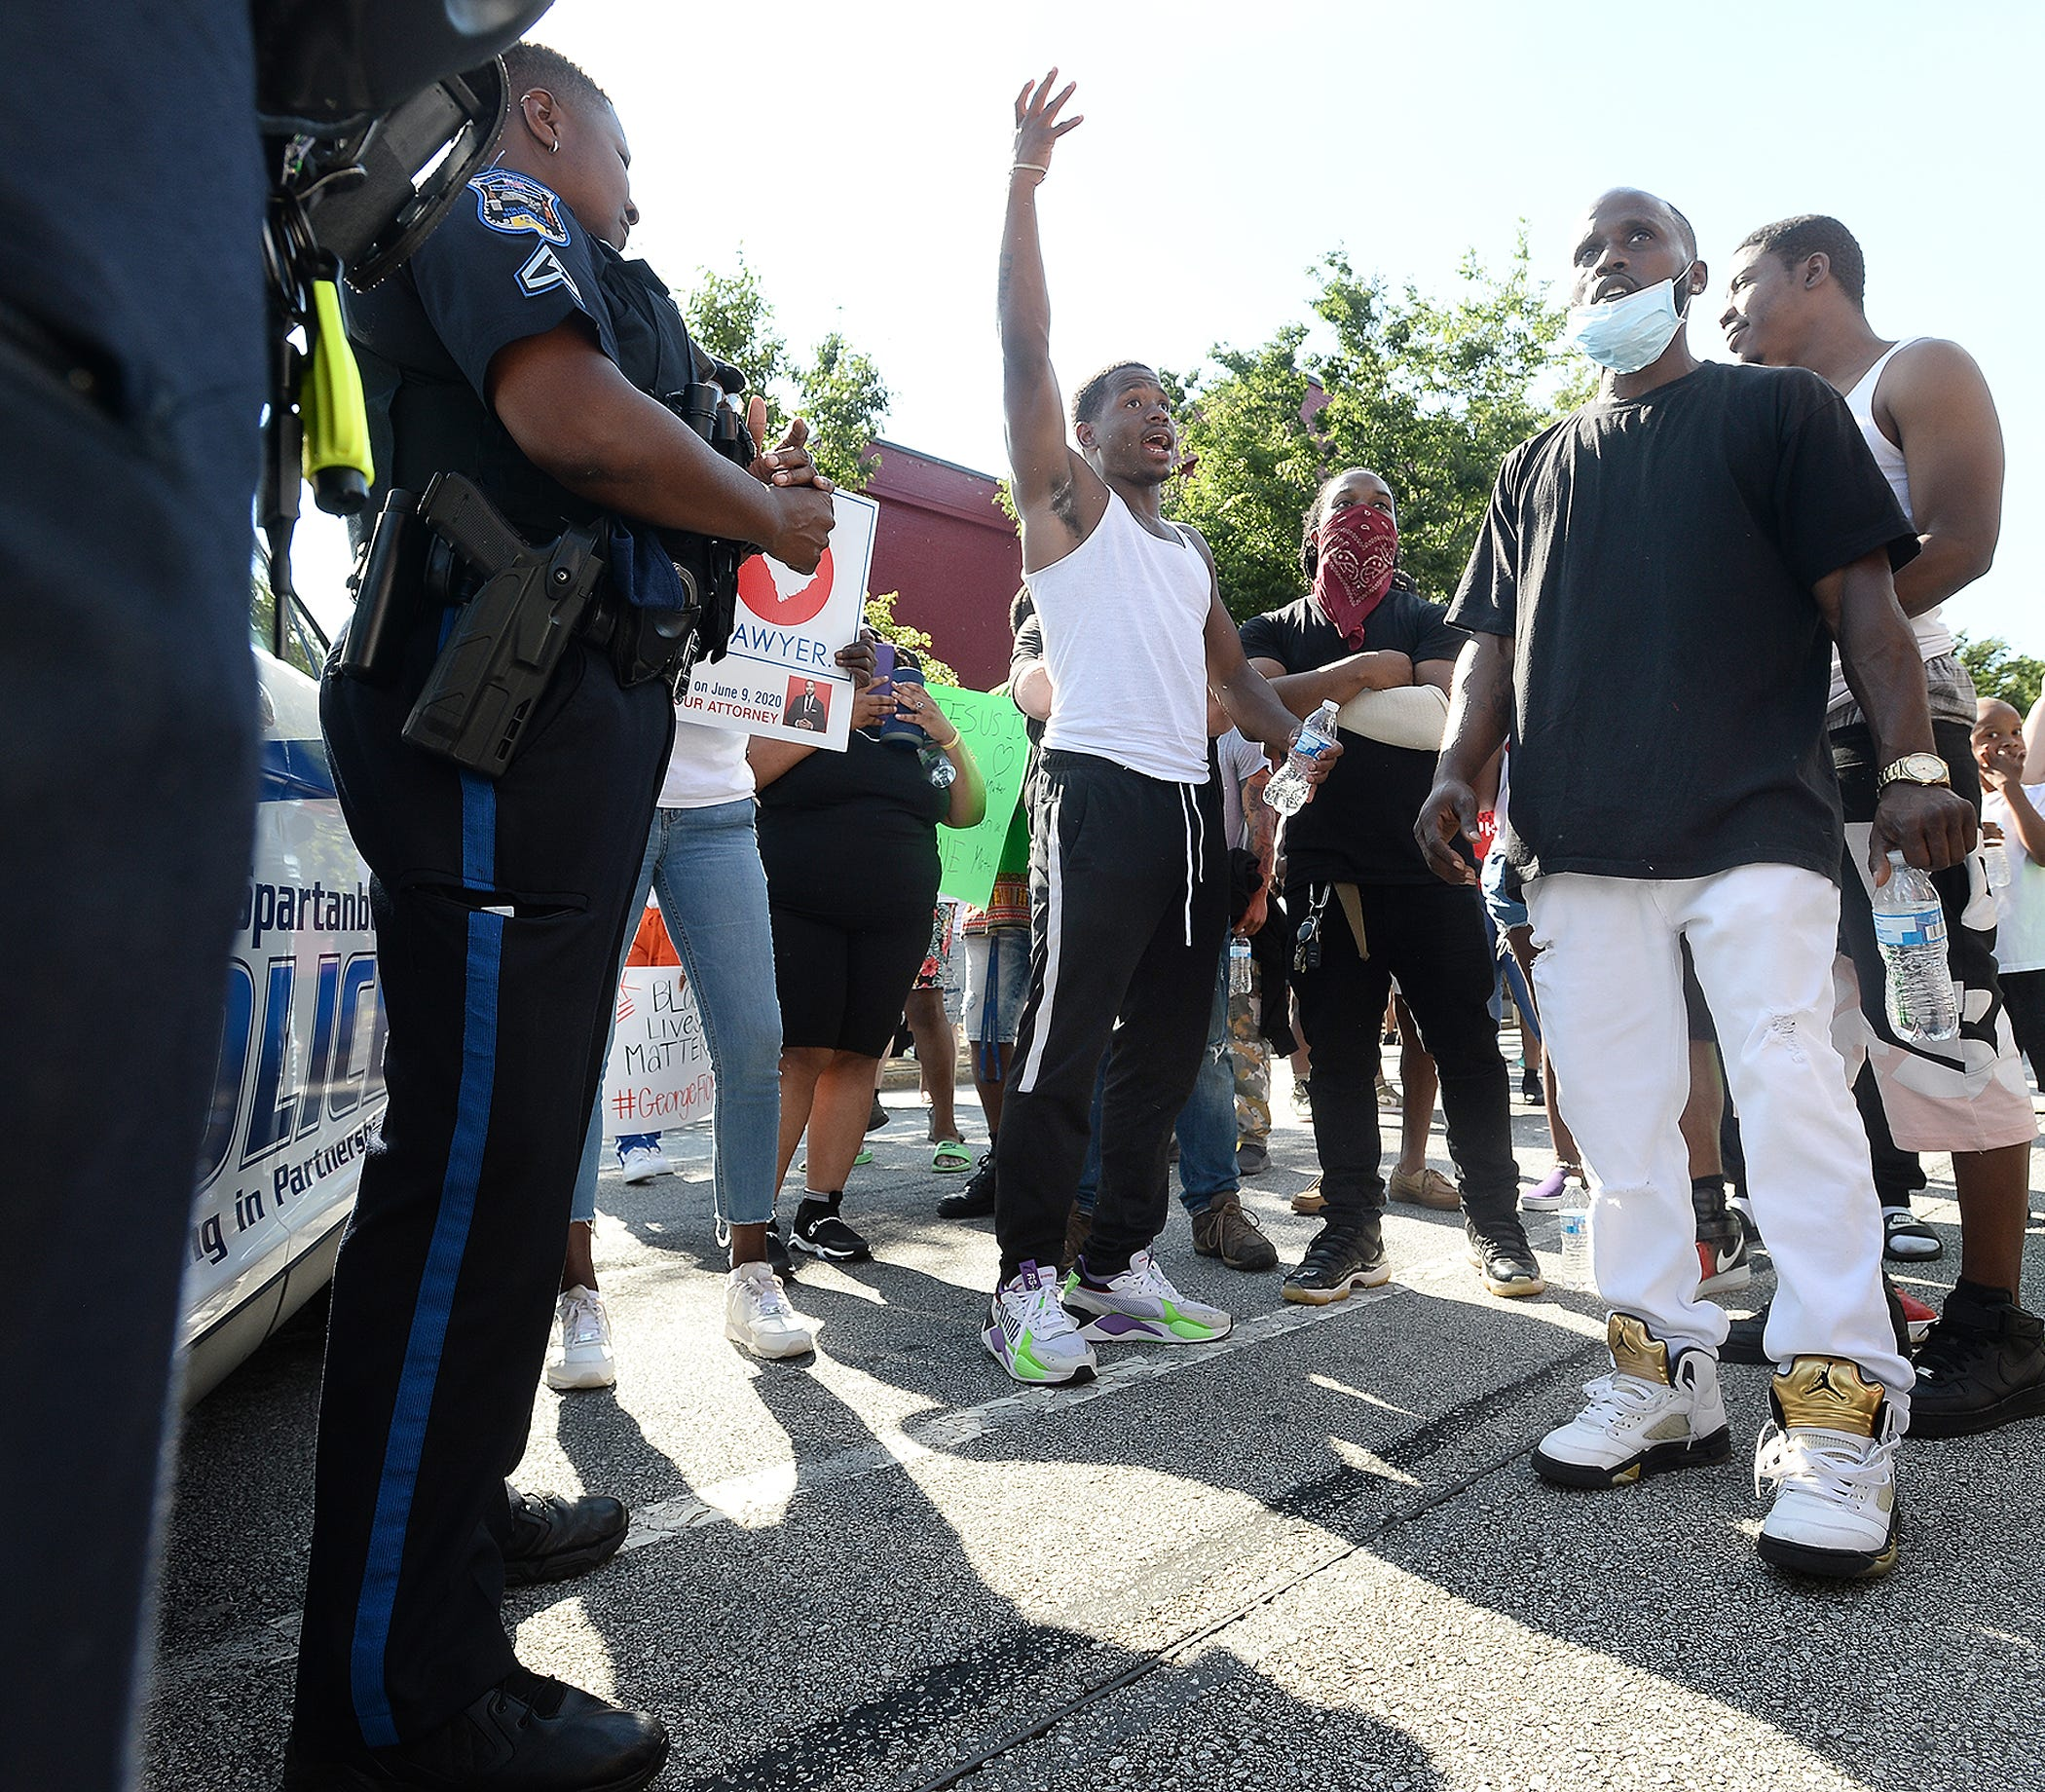 A group of peaceful protesters marched around the Spartanburg downtown area and to Barnet Park on Sunday.